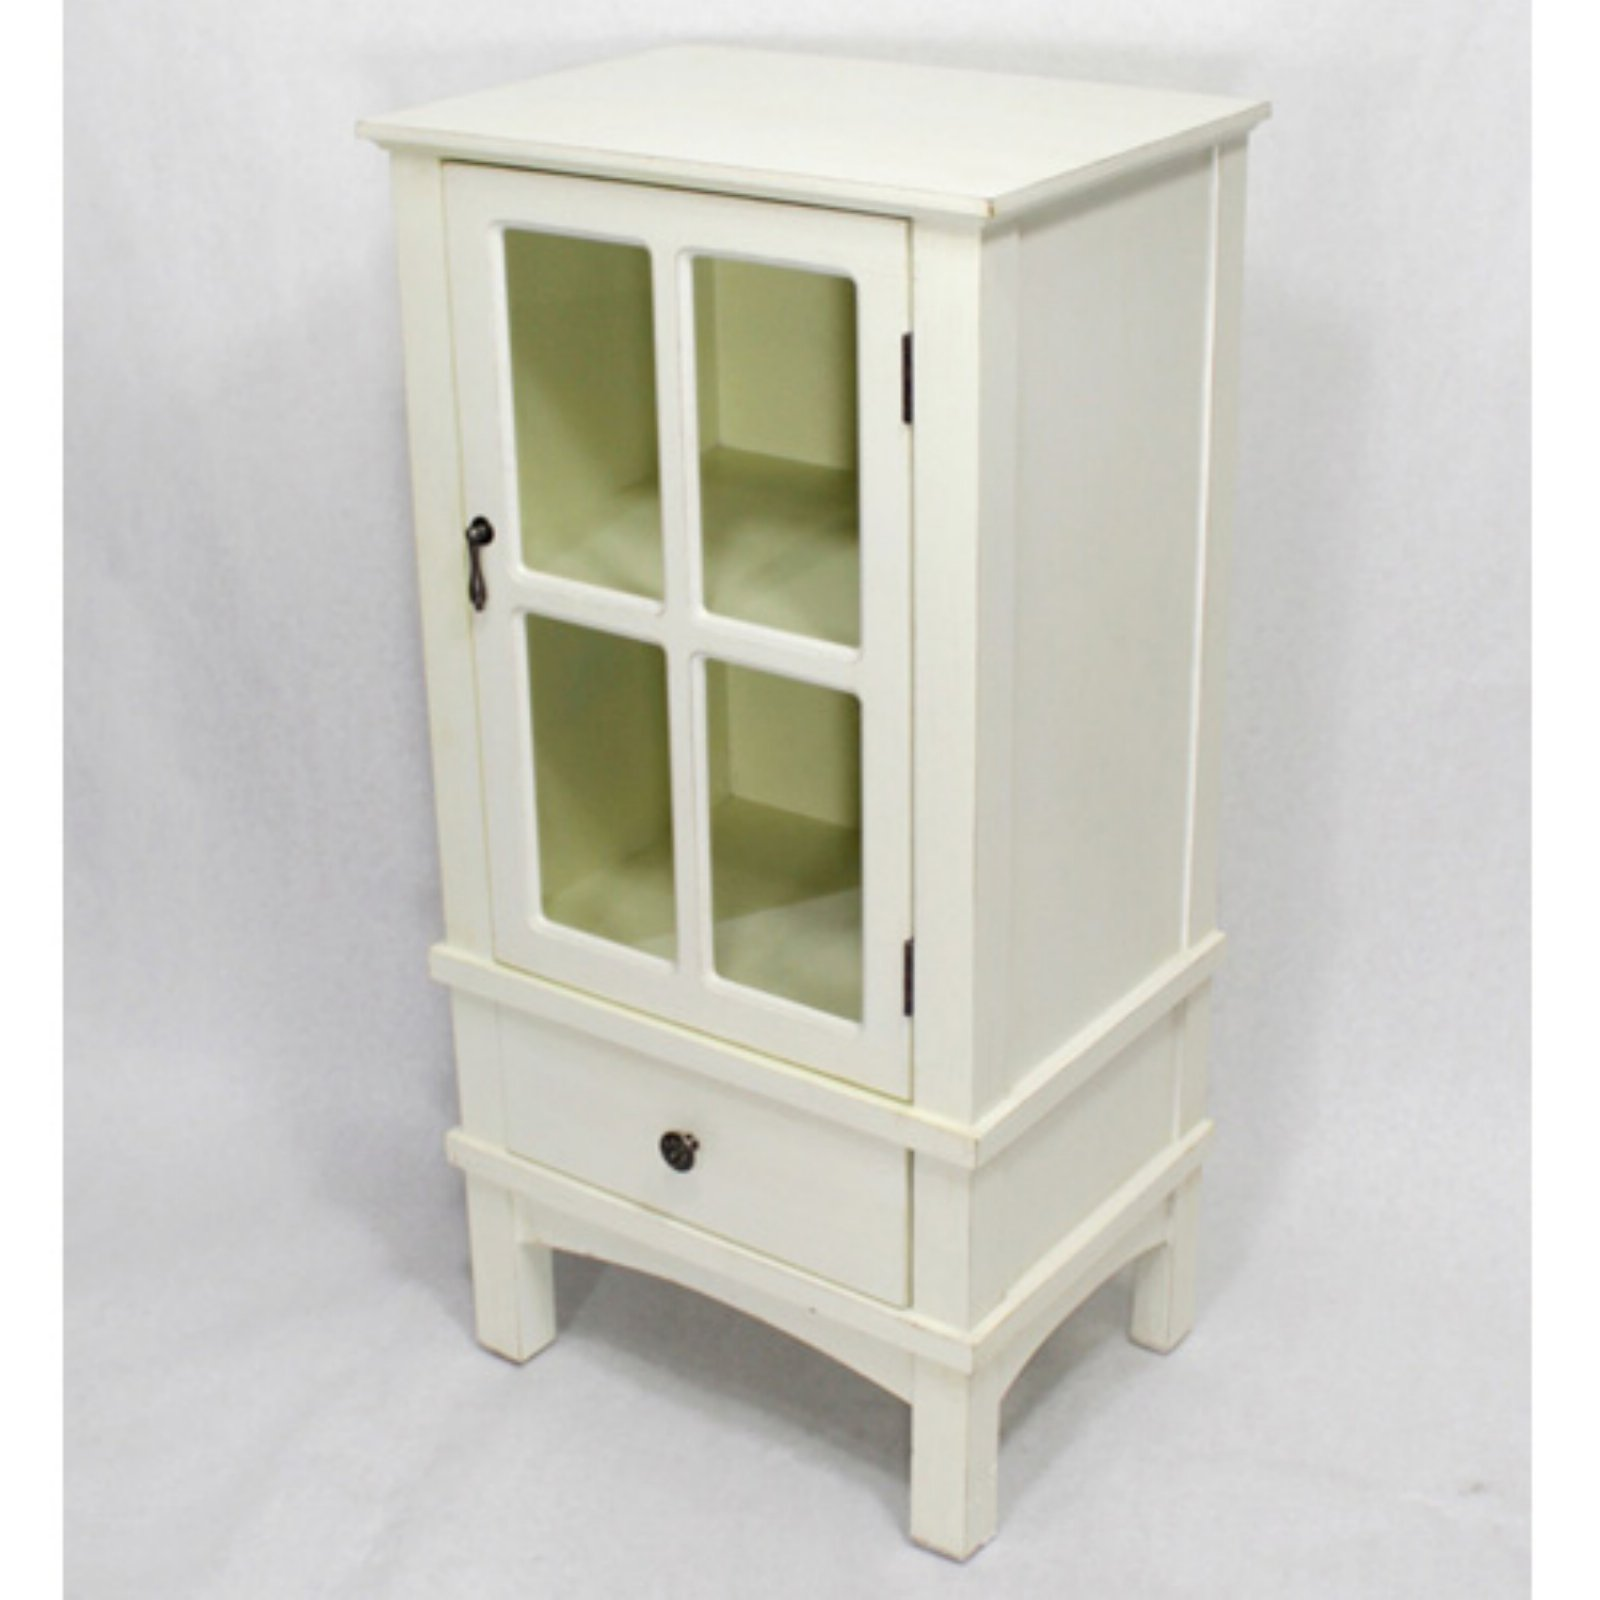 Heather Ann Creations Vivian Farmhouse Paned Glass Accent Cabinet